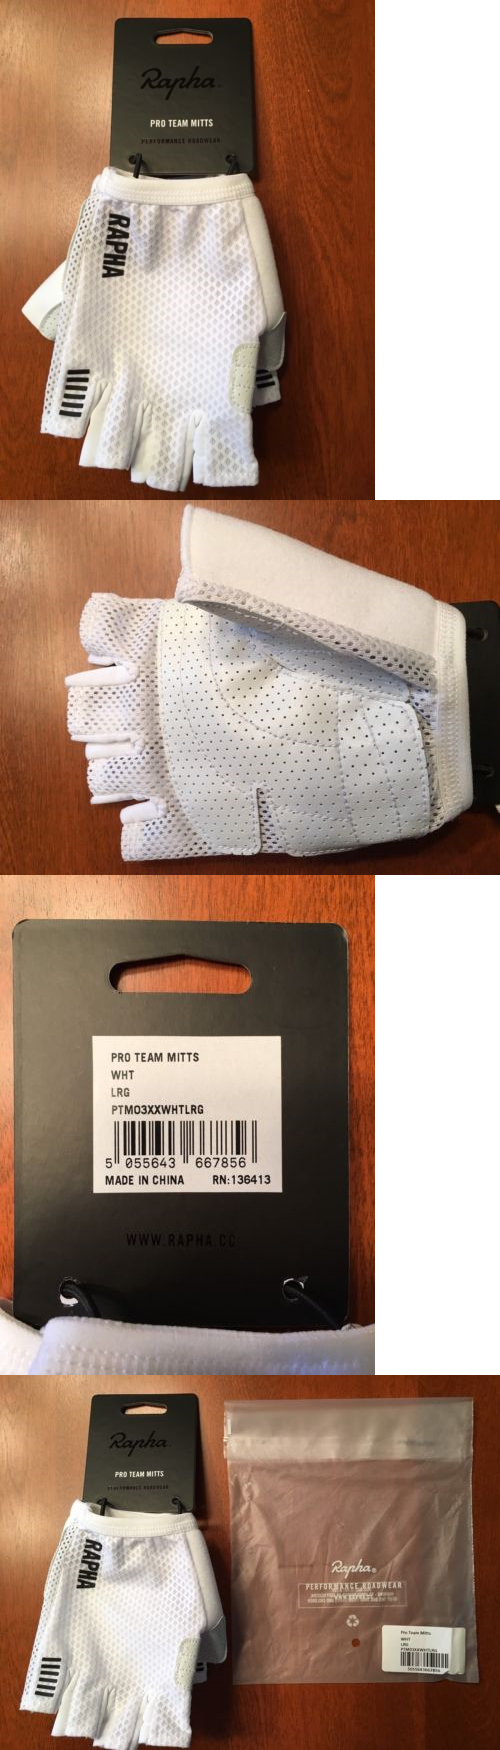 Gloves rapha pro team mitts gloves large white new in package